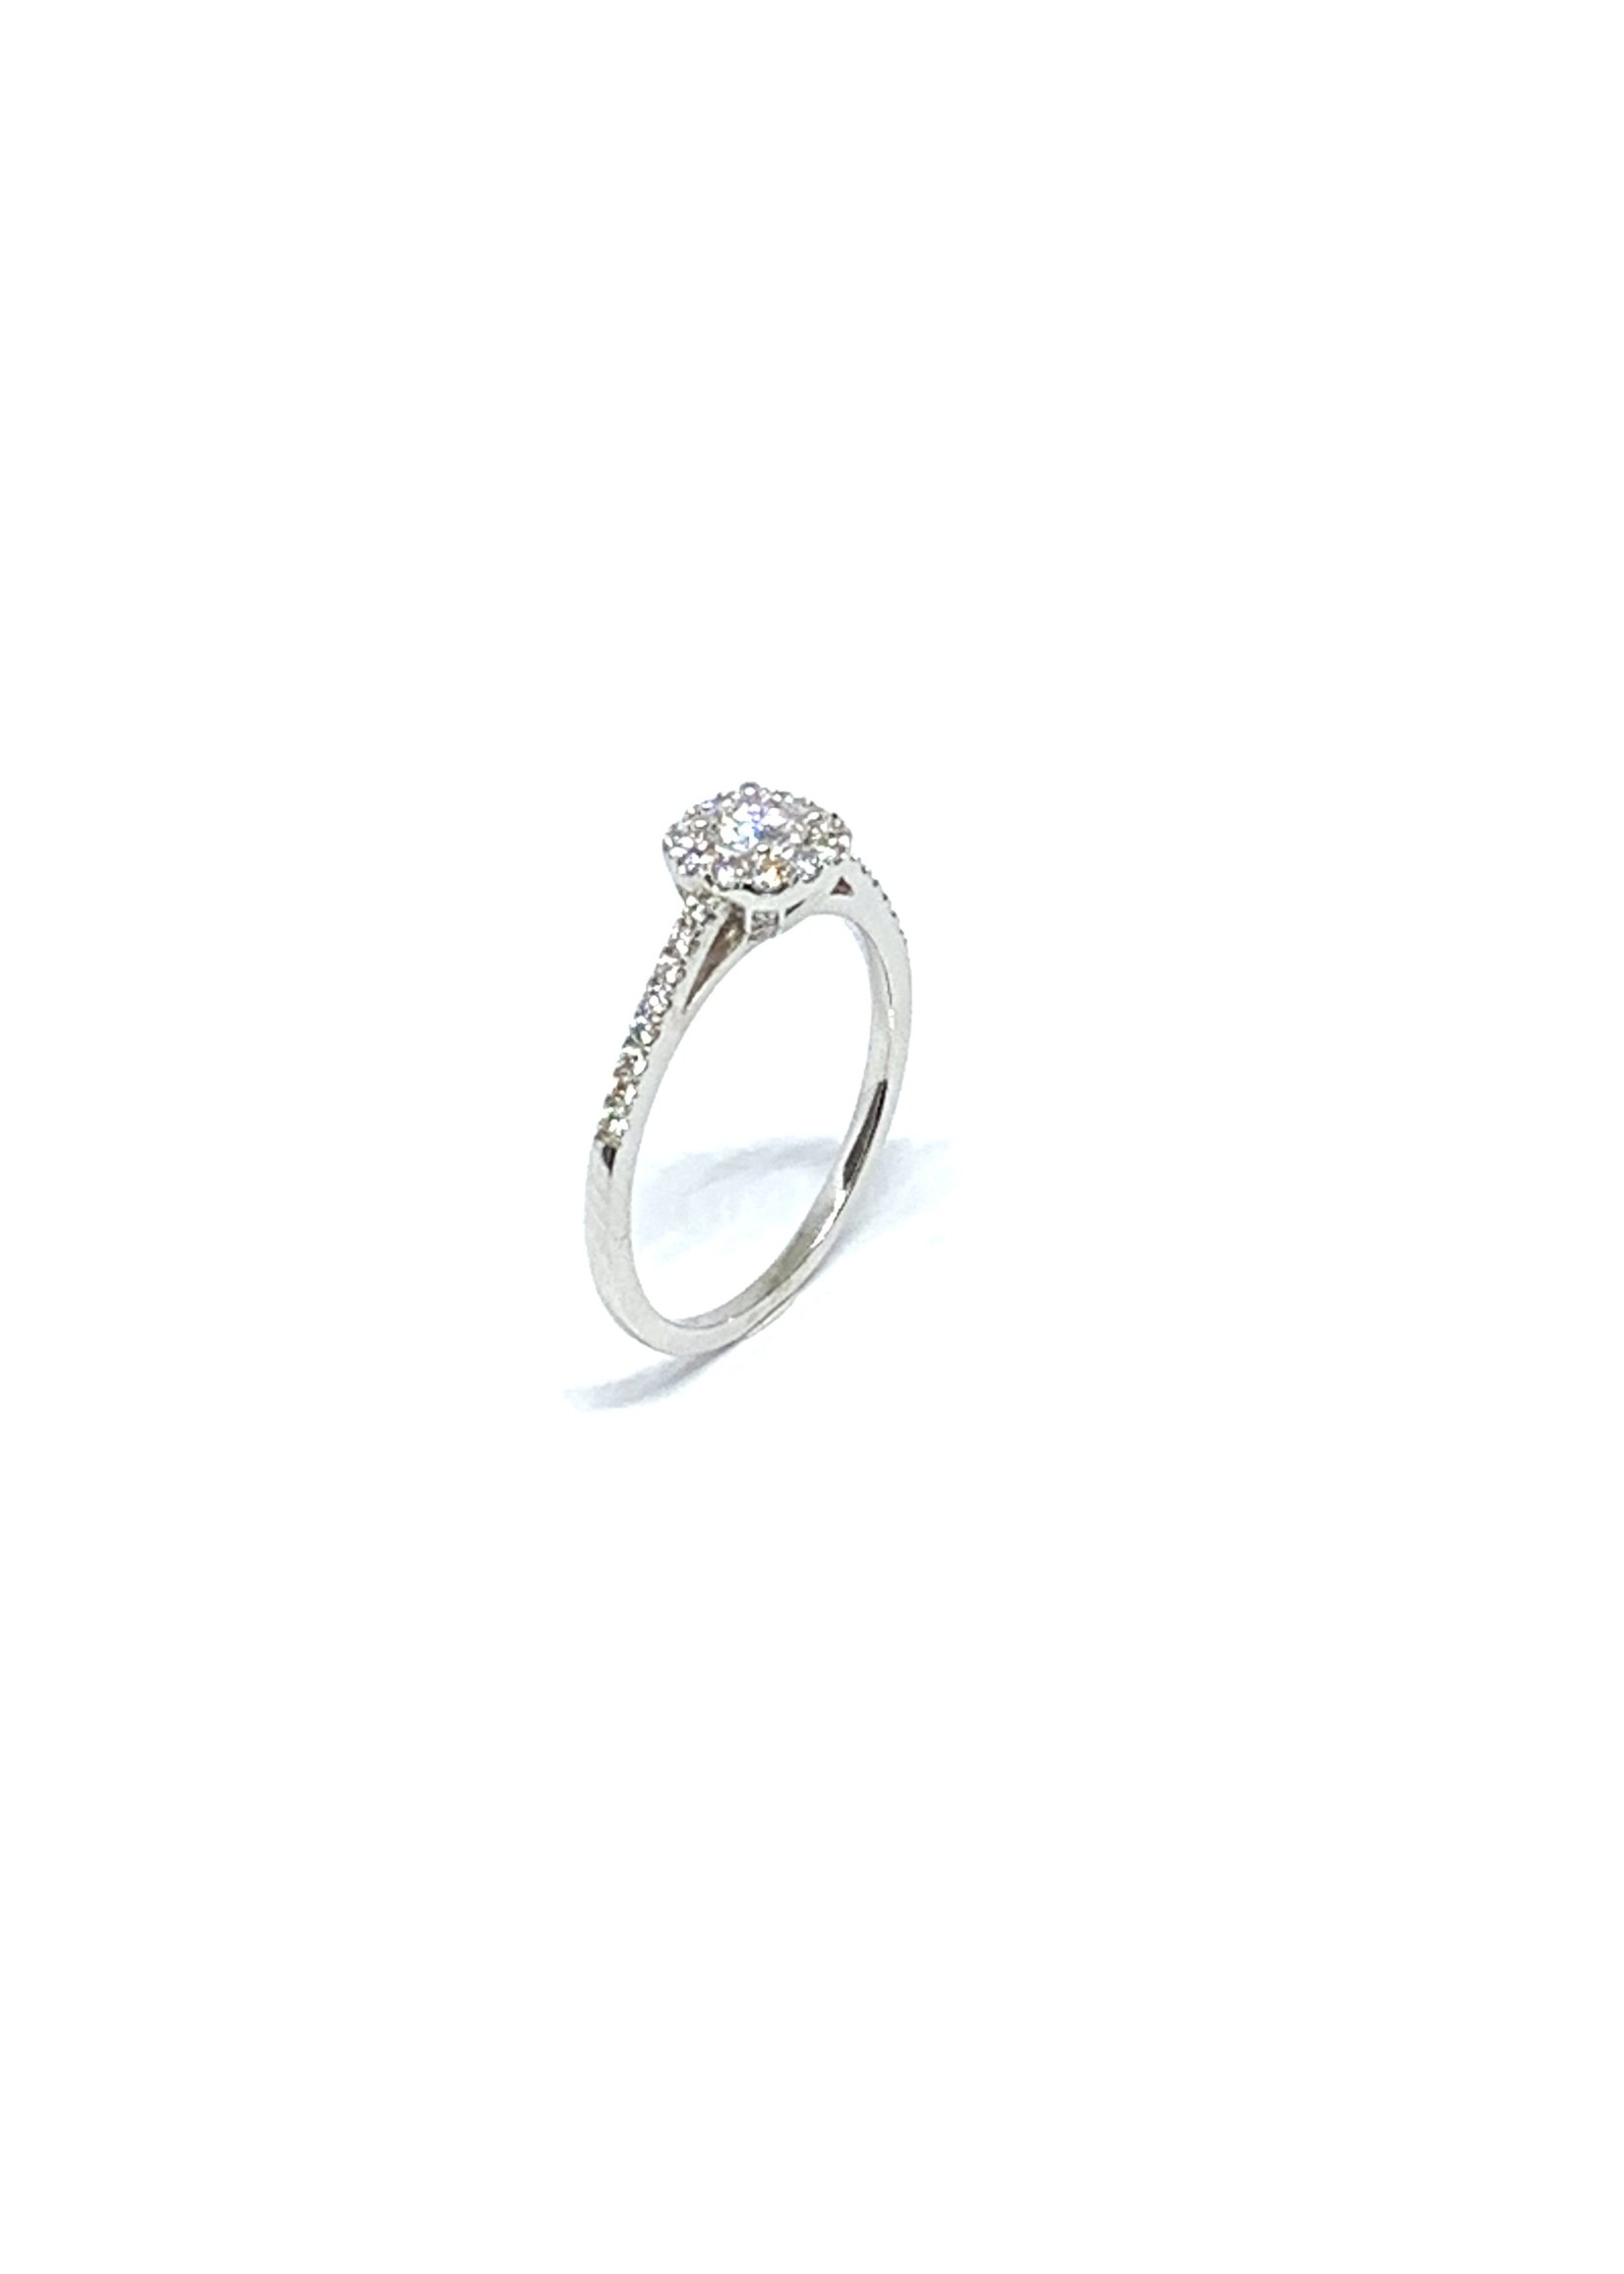 PARÉ Bague halo illusion Or blanc 14K avec diamants